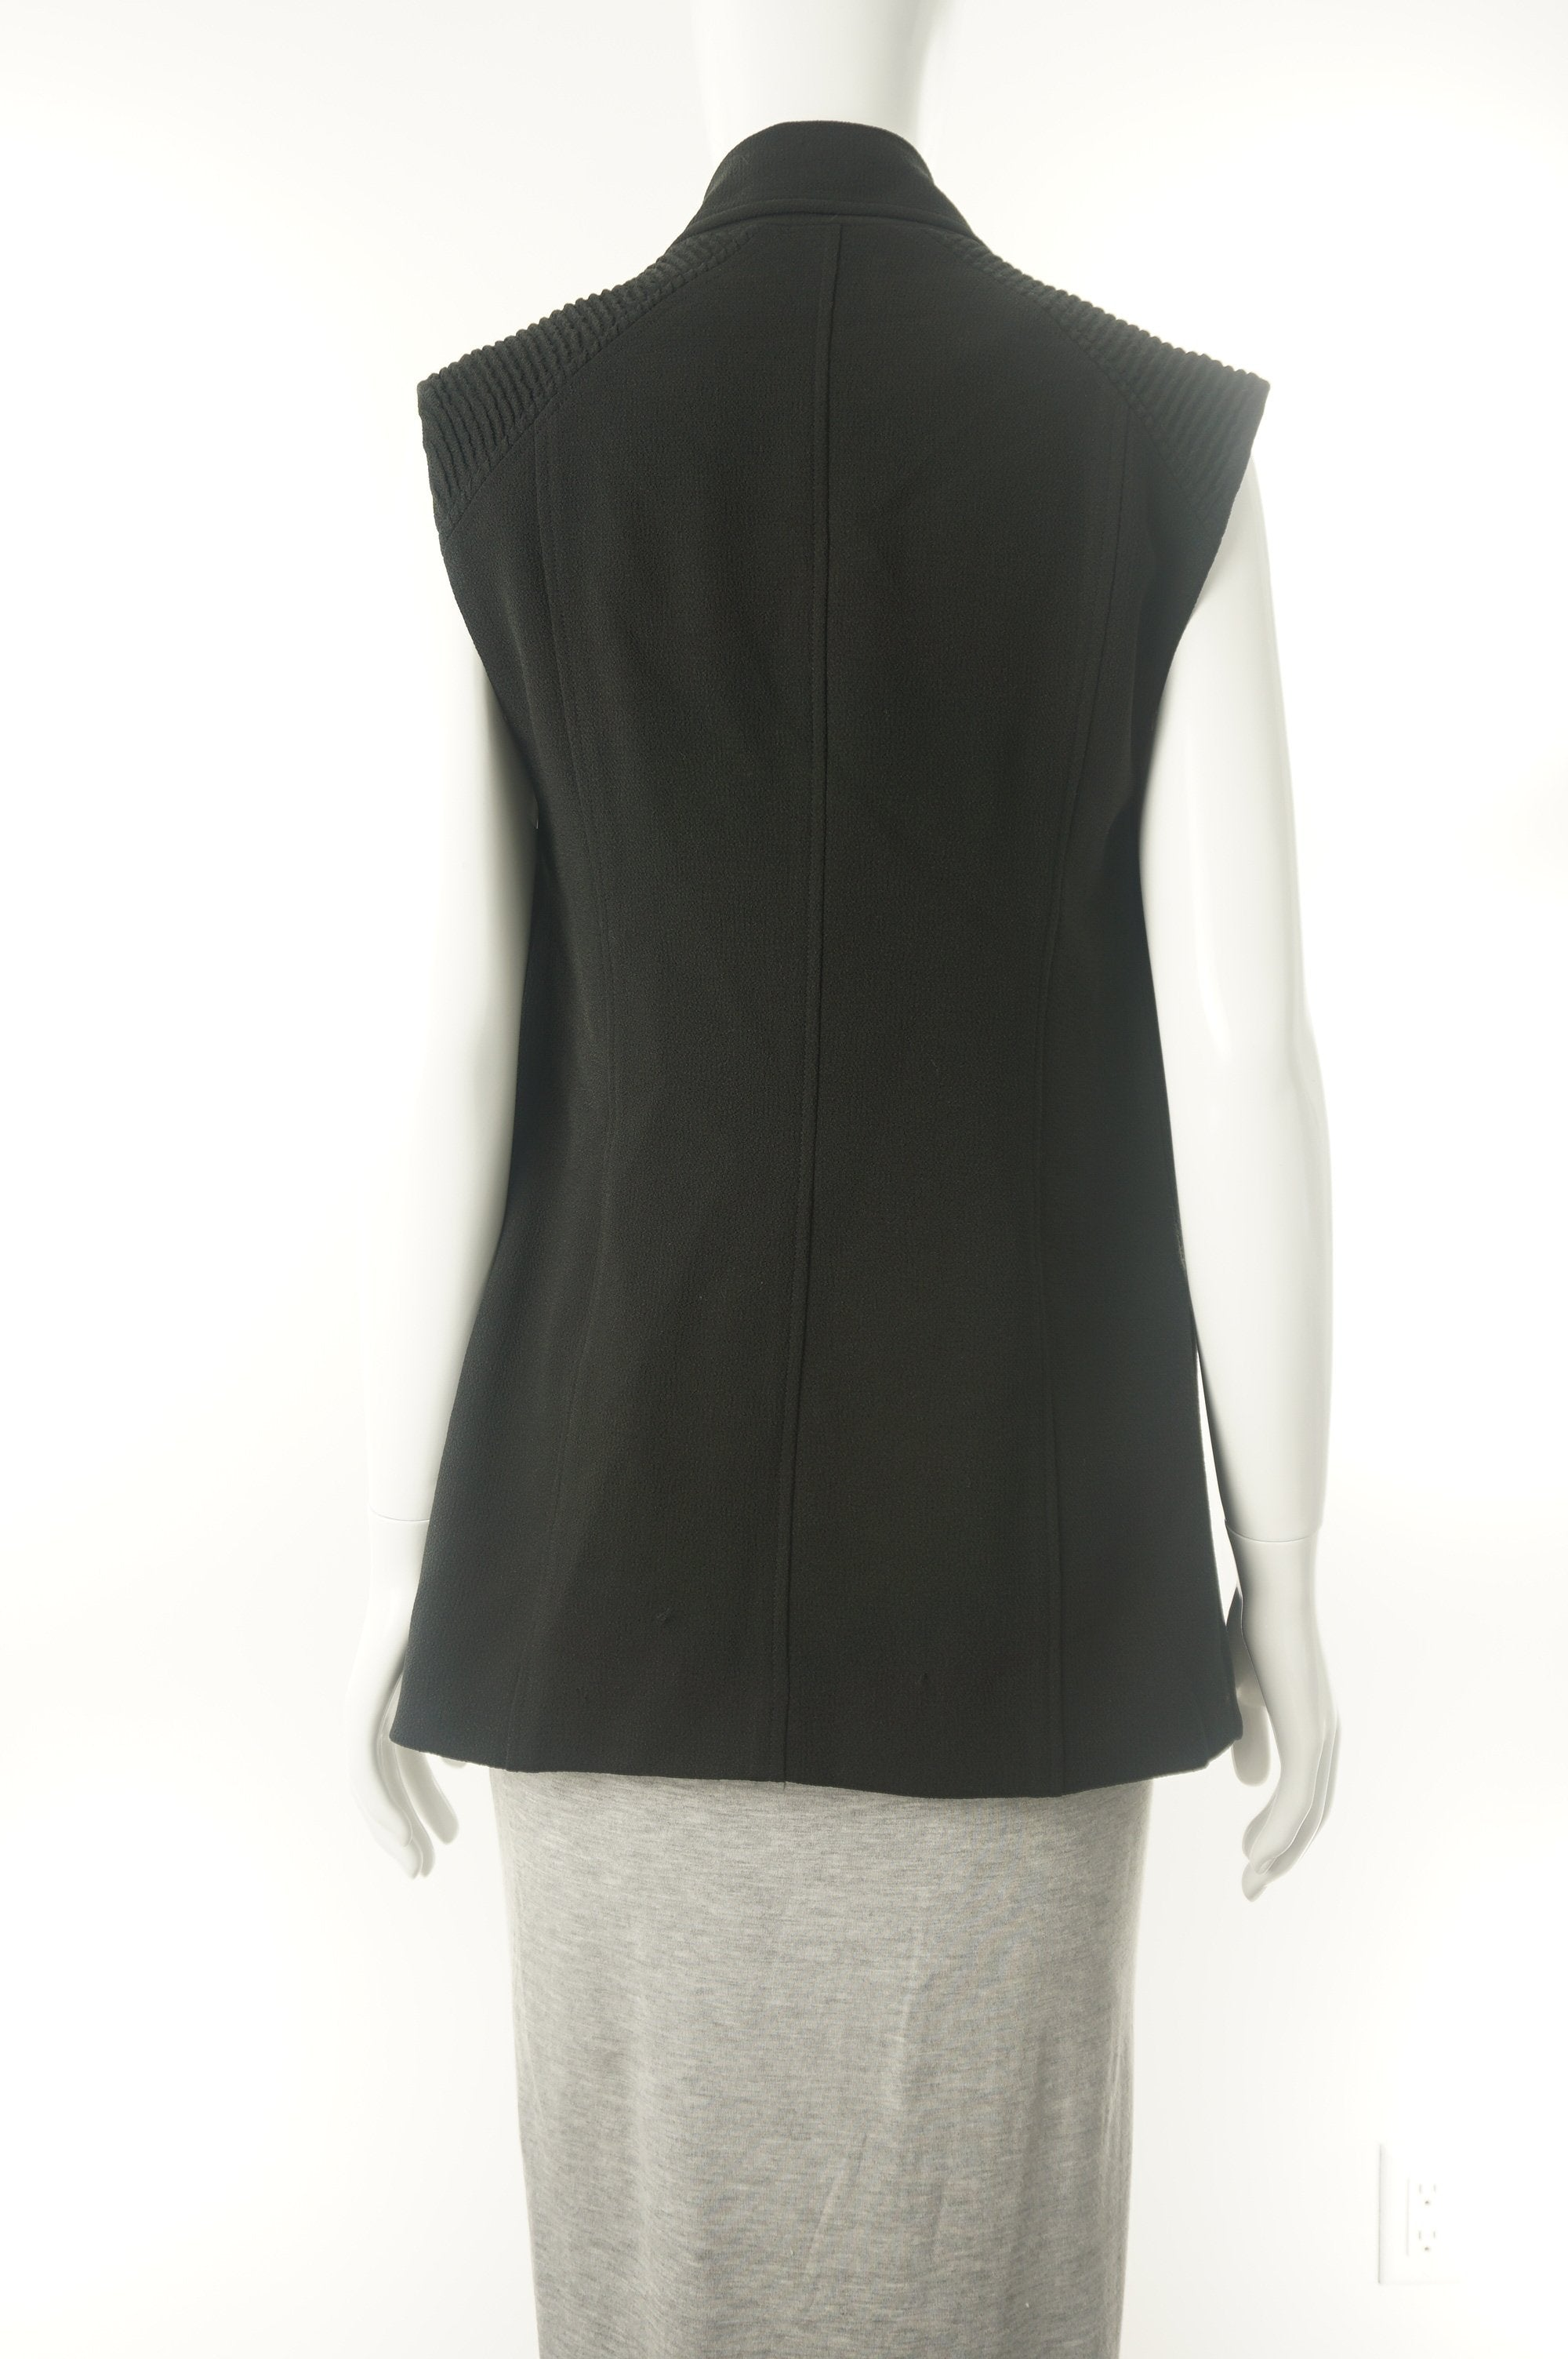 Wilfred Black Vest, Simple cute vest., Black, 68% acetate, 32% polyester,